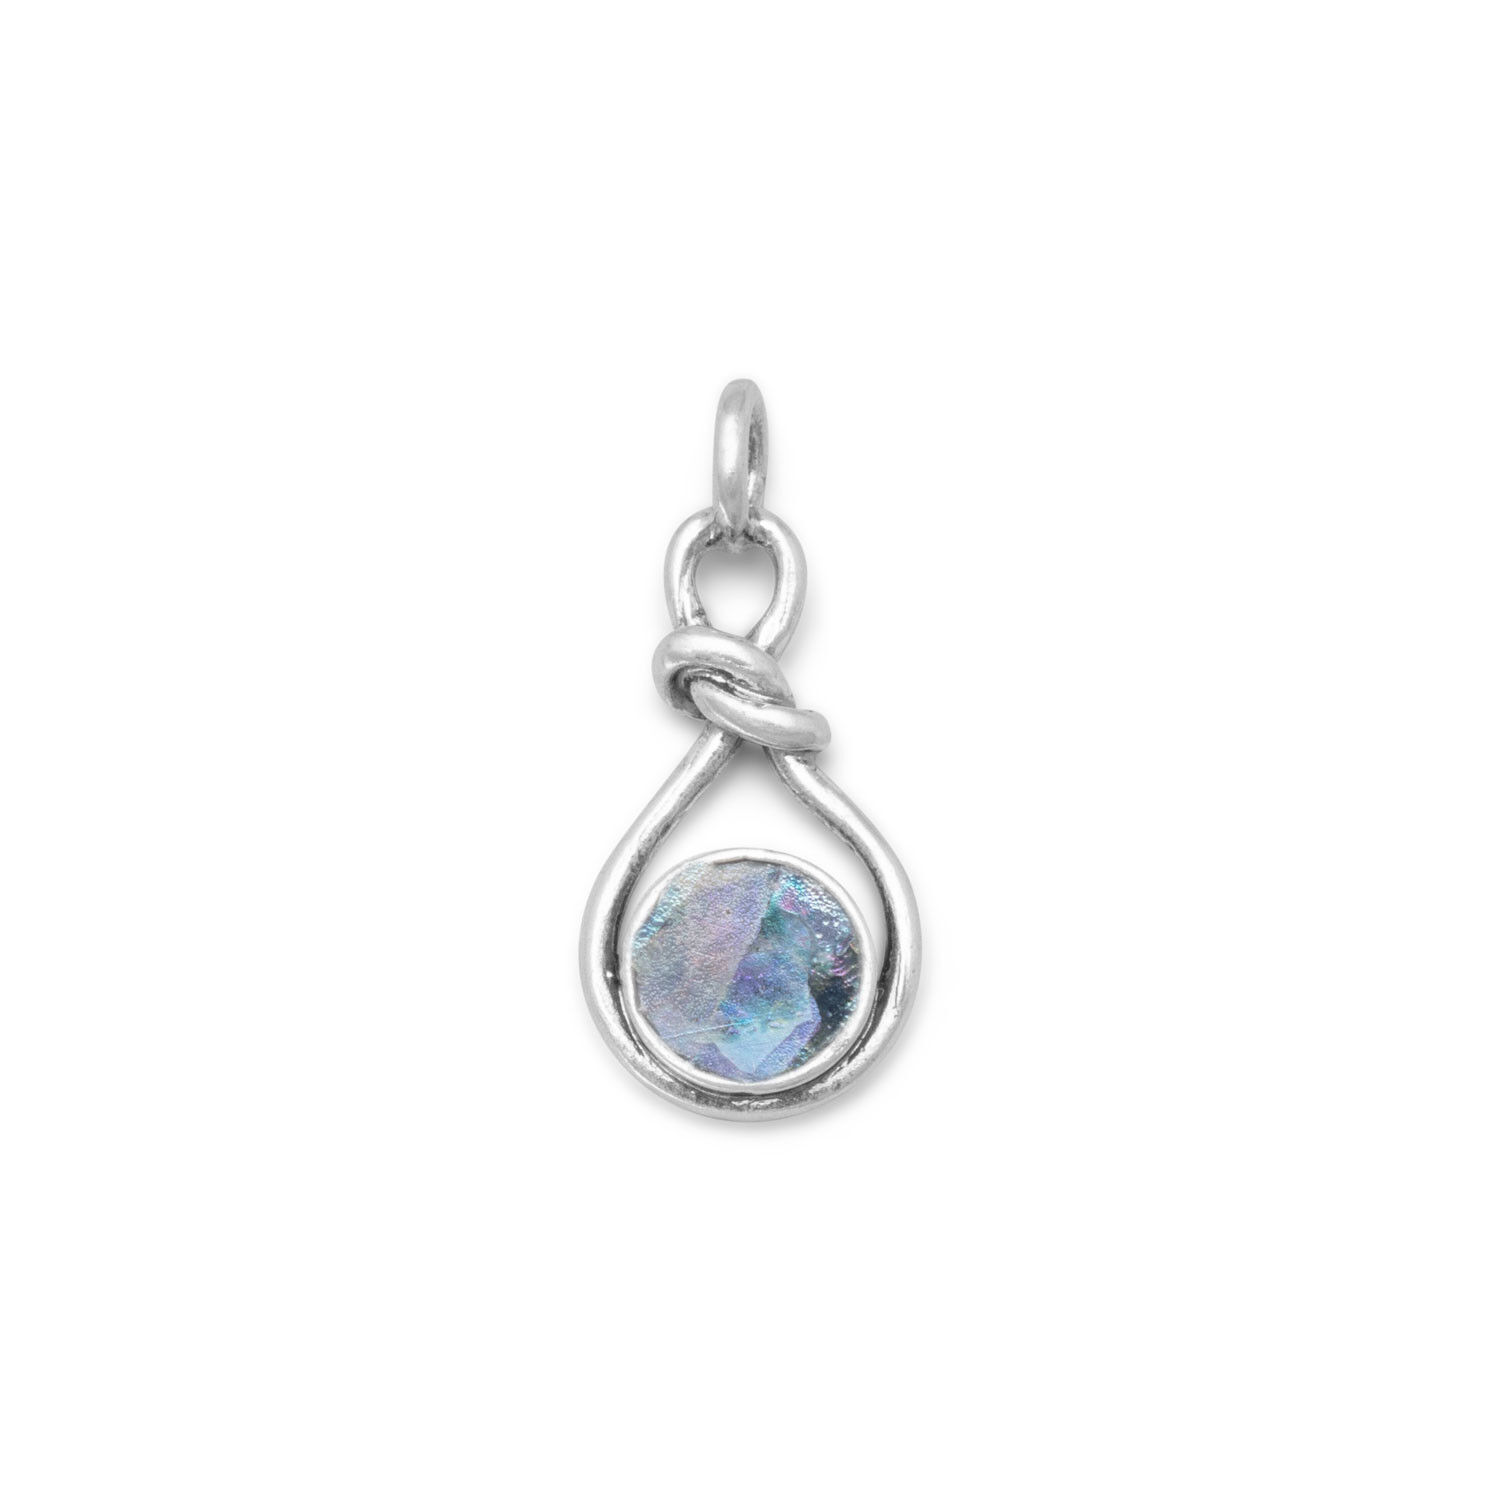 Round Roman Glass Set In Sterling Silver W/ Knot Design Pendant - $39.95